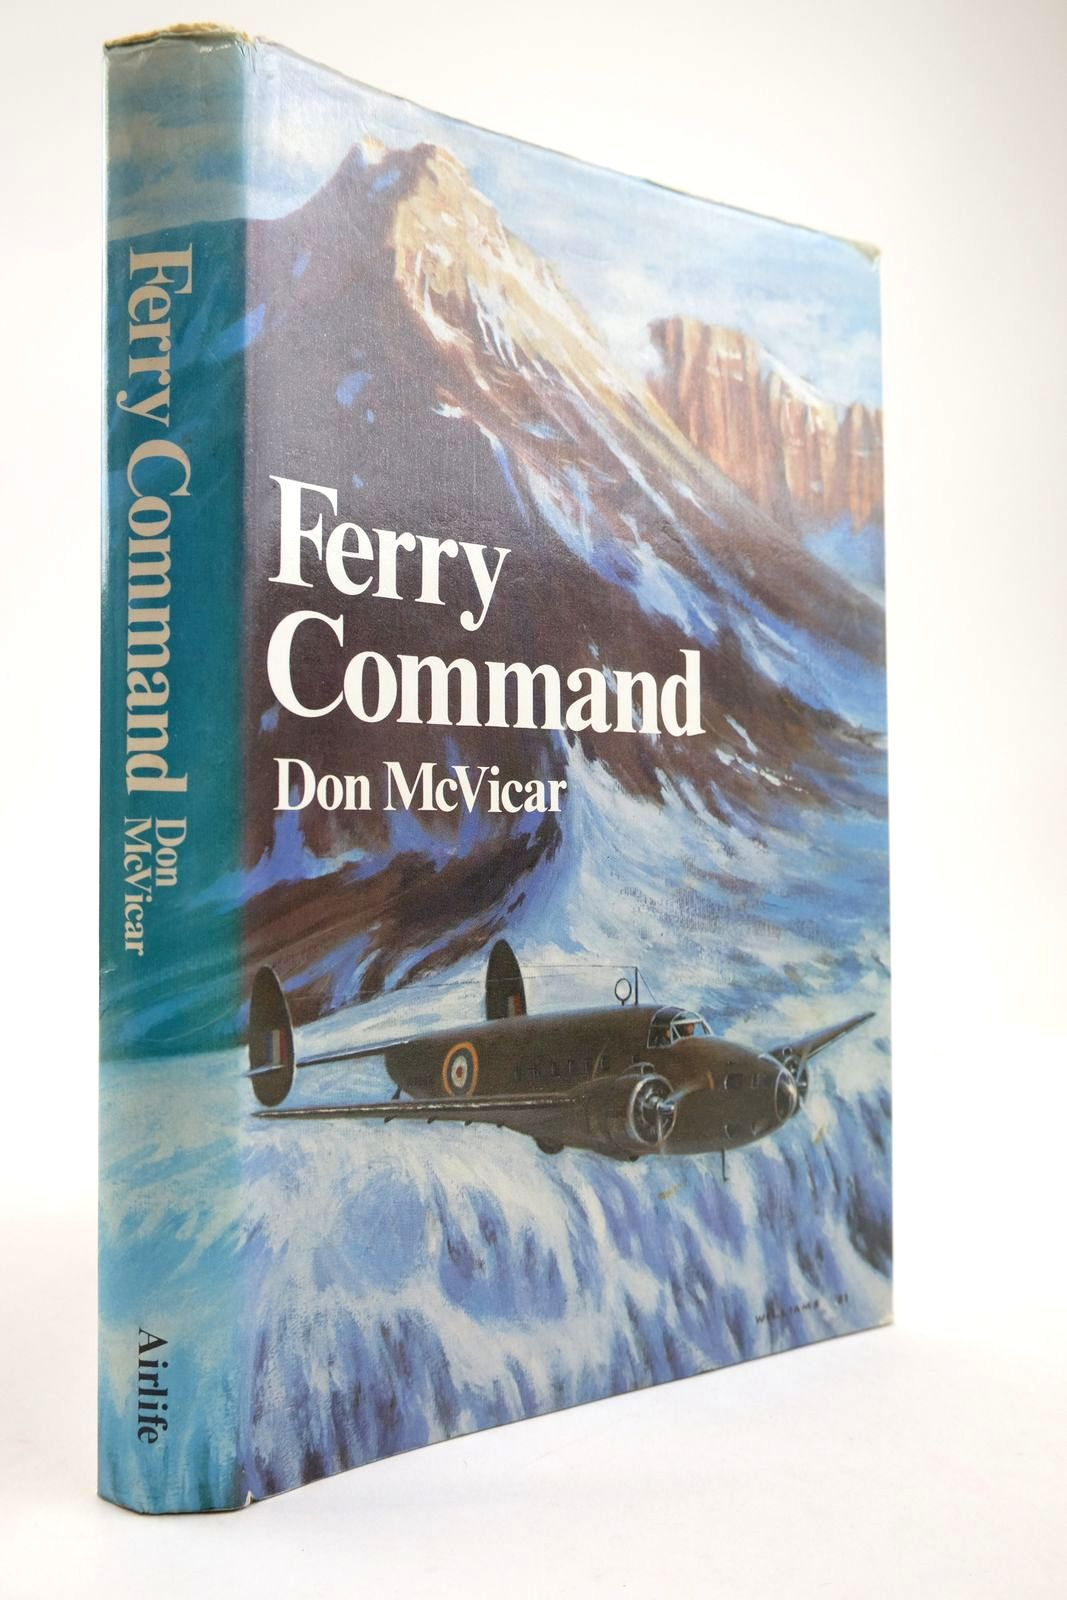 Photo of FERRY COMMAND written by McVicar, Don illustrated by Williams, L.R. published by Airlife (STOCK CODE: 2134088)  for sale by Stella & Rose's Books